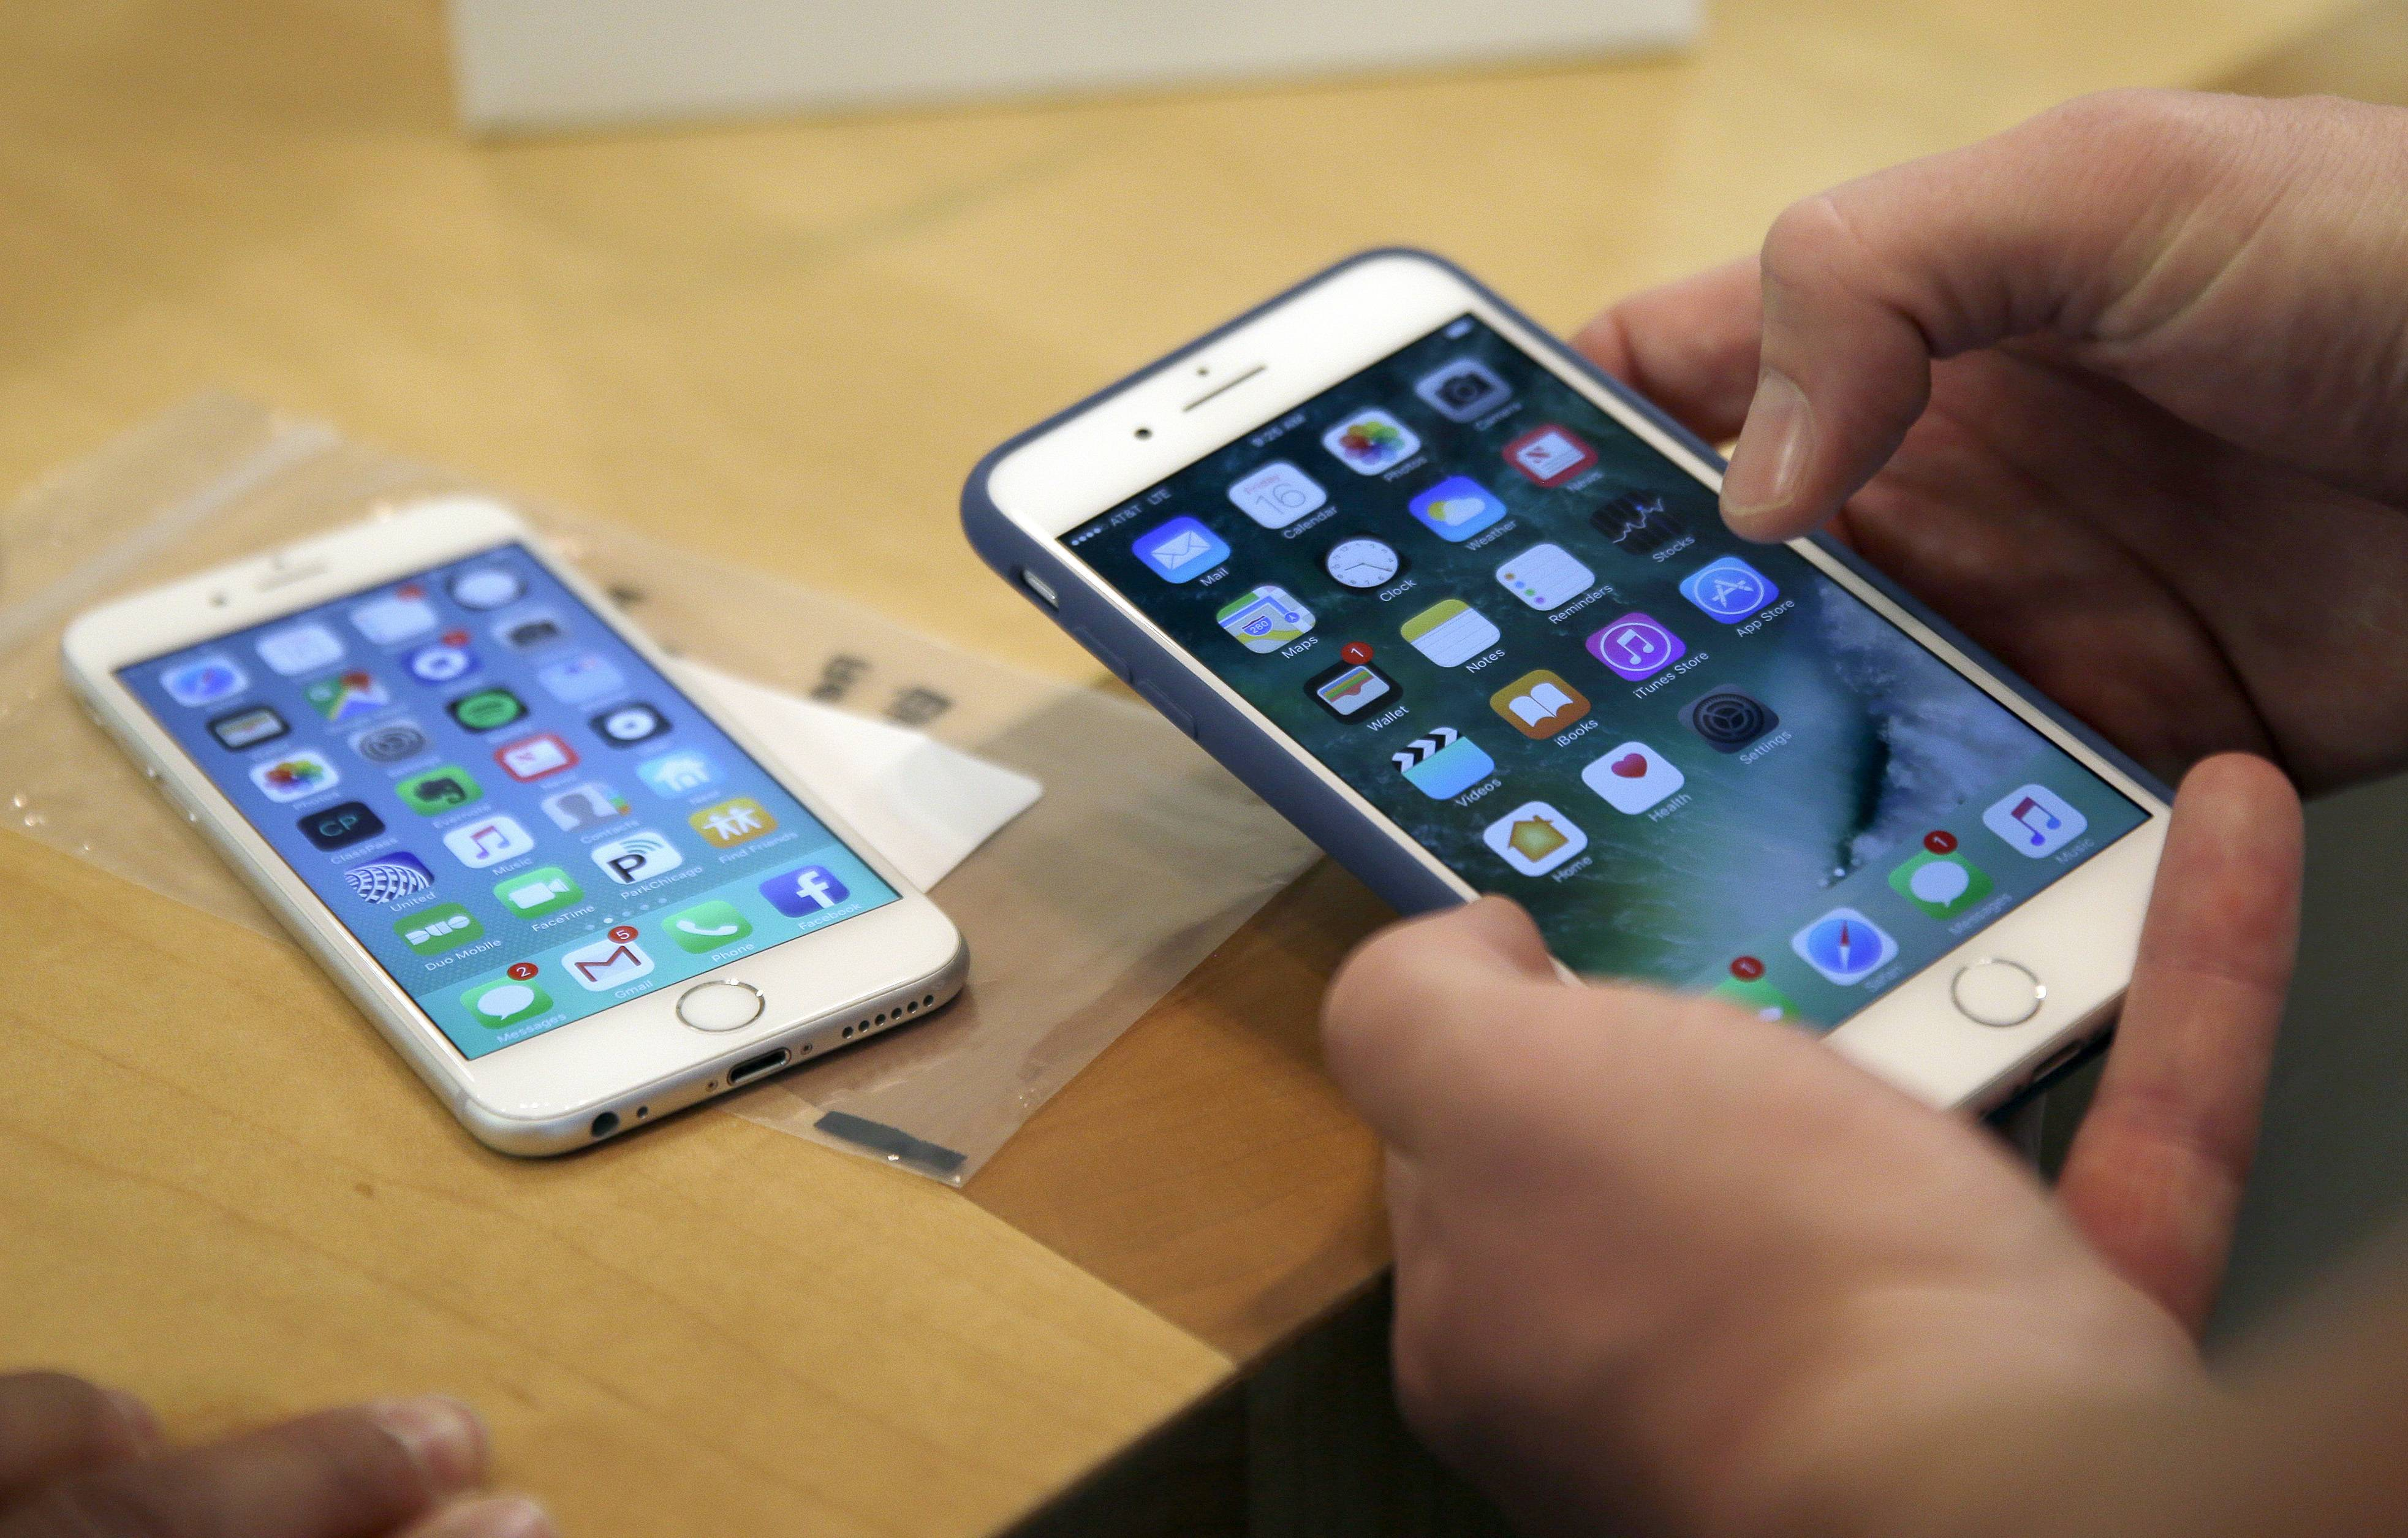 Some people across the country are reporting that they're having a tough time getting their iPhone batteries replaced through Apple's battery replacement program that launched after the company admitted that it slows down phones with older batteries to preserve the phones' performance.